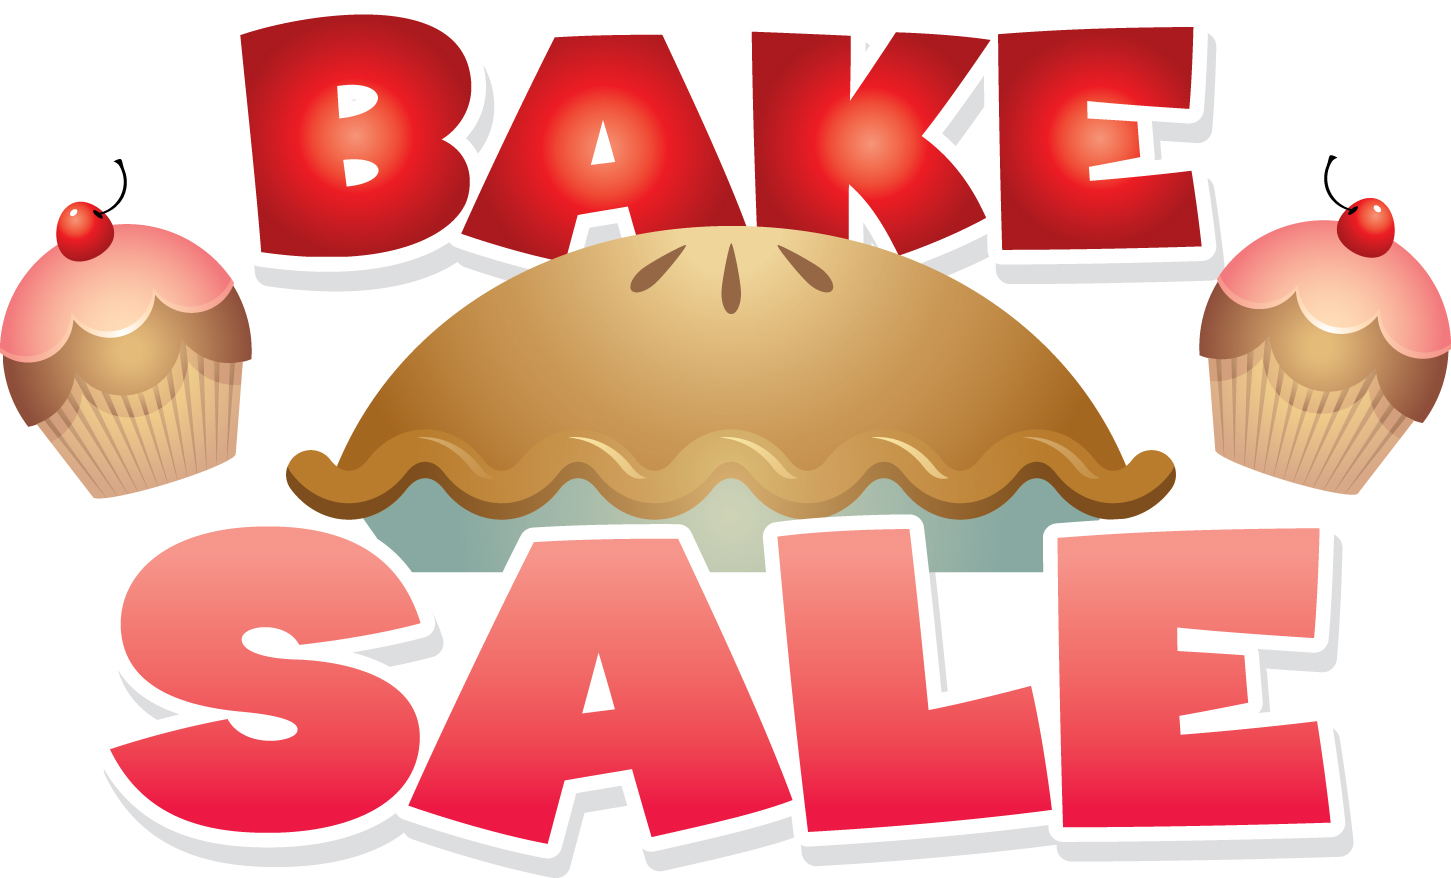 Free Bake Sale Clip Art, Download Free Clip Art, Free Clip Art on.